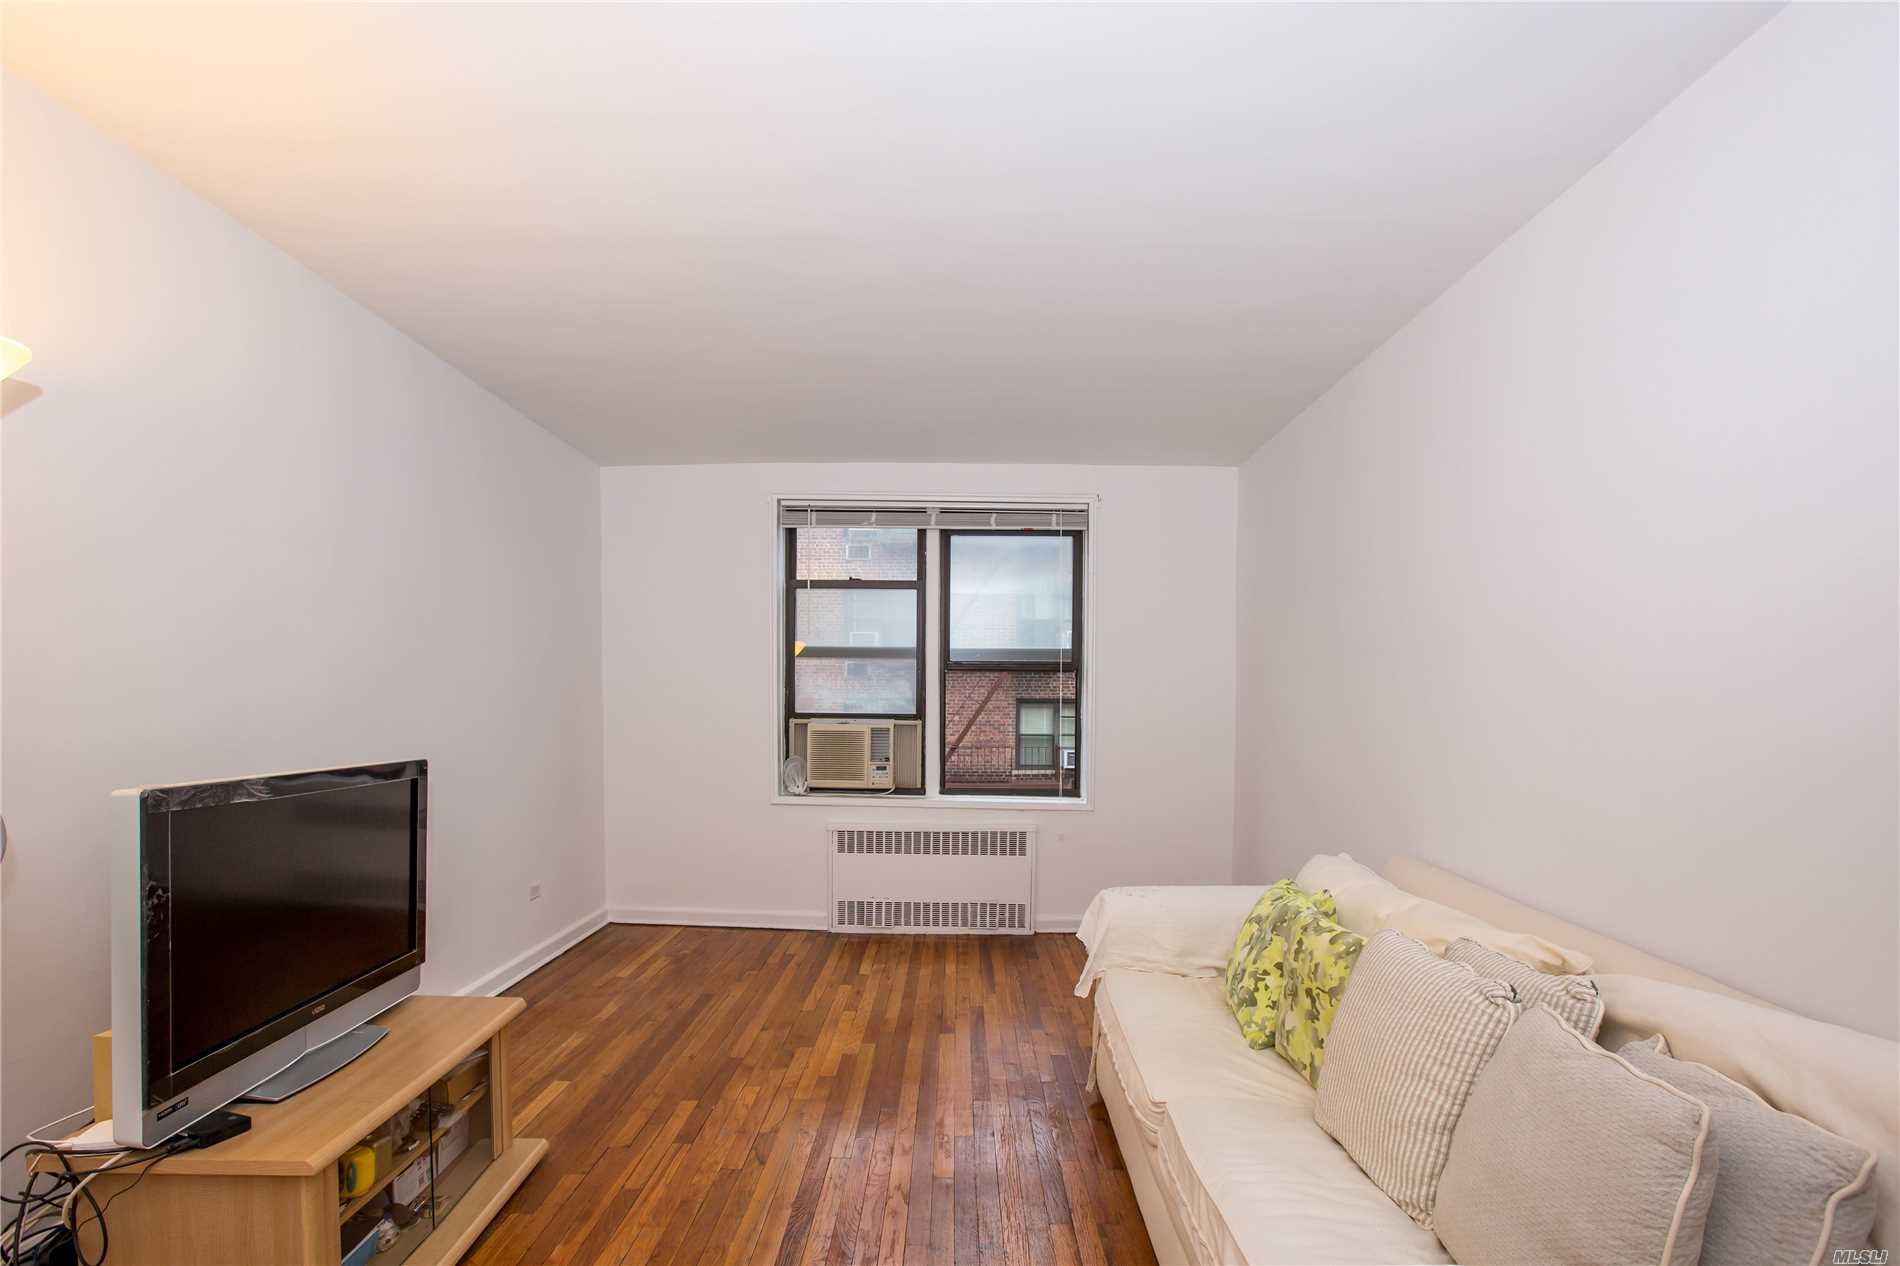 Large Bedroom, 24 Hours Doorman, Pat-Friendly Building, Gym, Kids Play Room. Zoned To P.S 196. Near Exp E & F Trains And Shop. Nearby Austin Street.